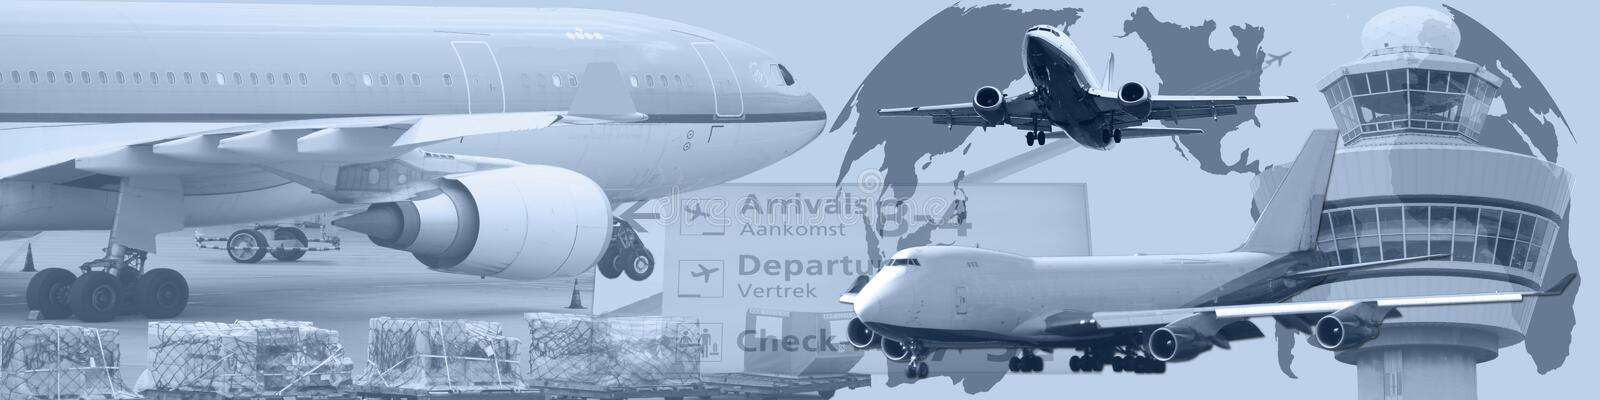 Banner World Wide Air Traffic. This banner / header shows a composition of air planes a control tower and the transportation of goods on an airport. On the stock illustration